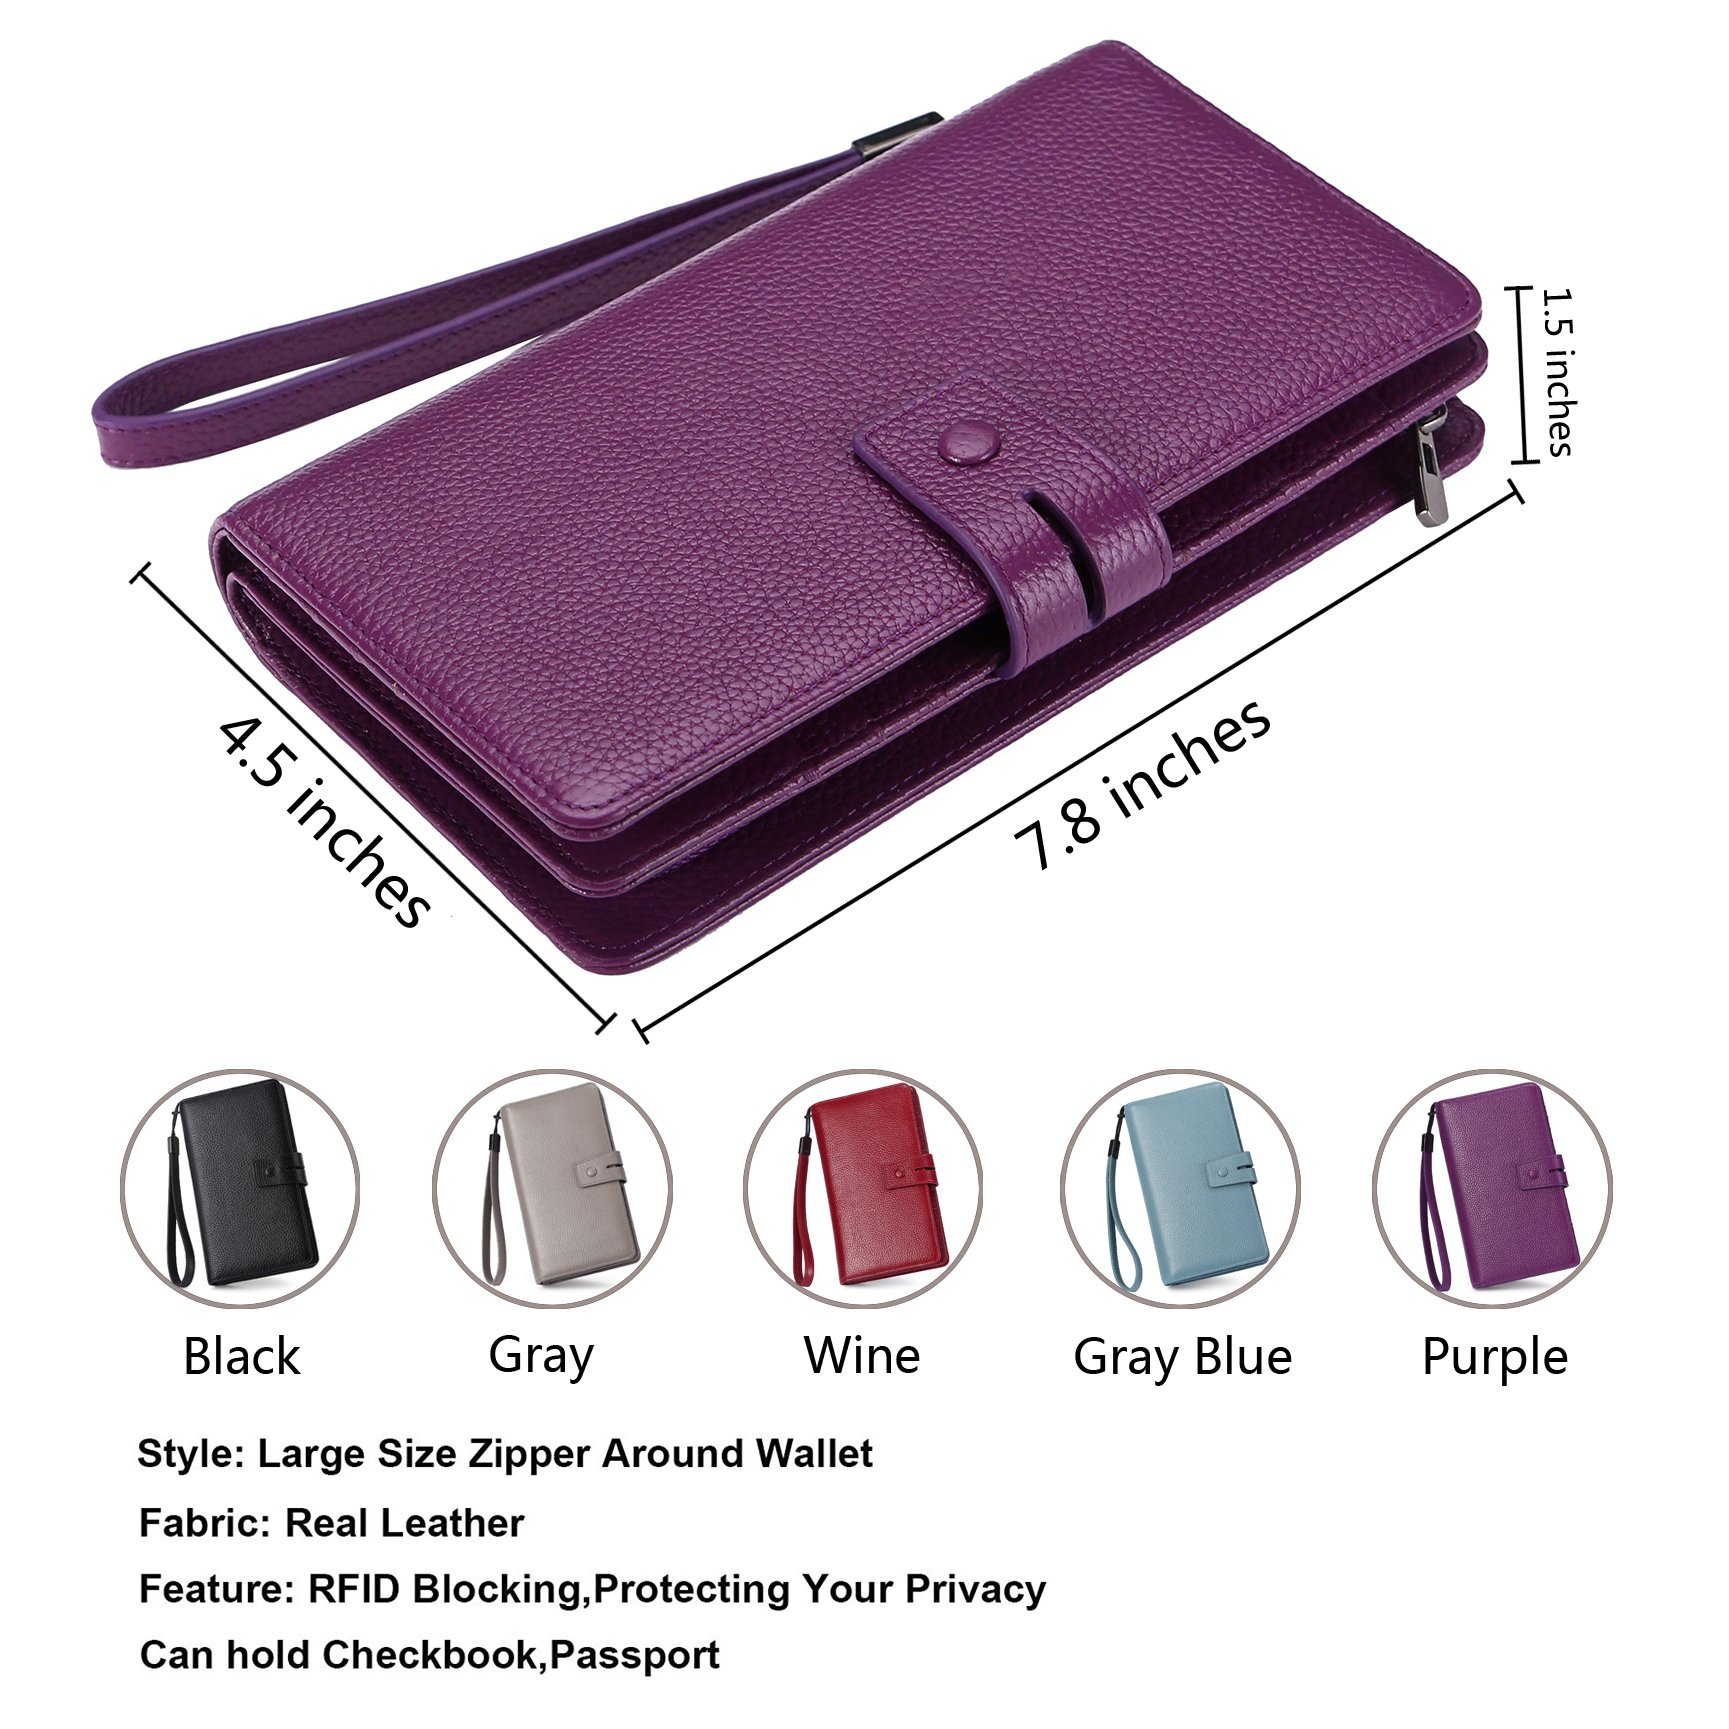 AINIMOER Women's Big RFID Blocking Leather Zip Around Wallets for Womens Clutch Organizer Checkbook Holder Large Travel Purse(Lichee Purple) by AINIMOER (Image #3)